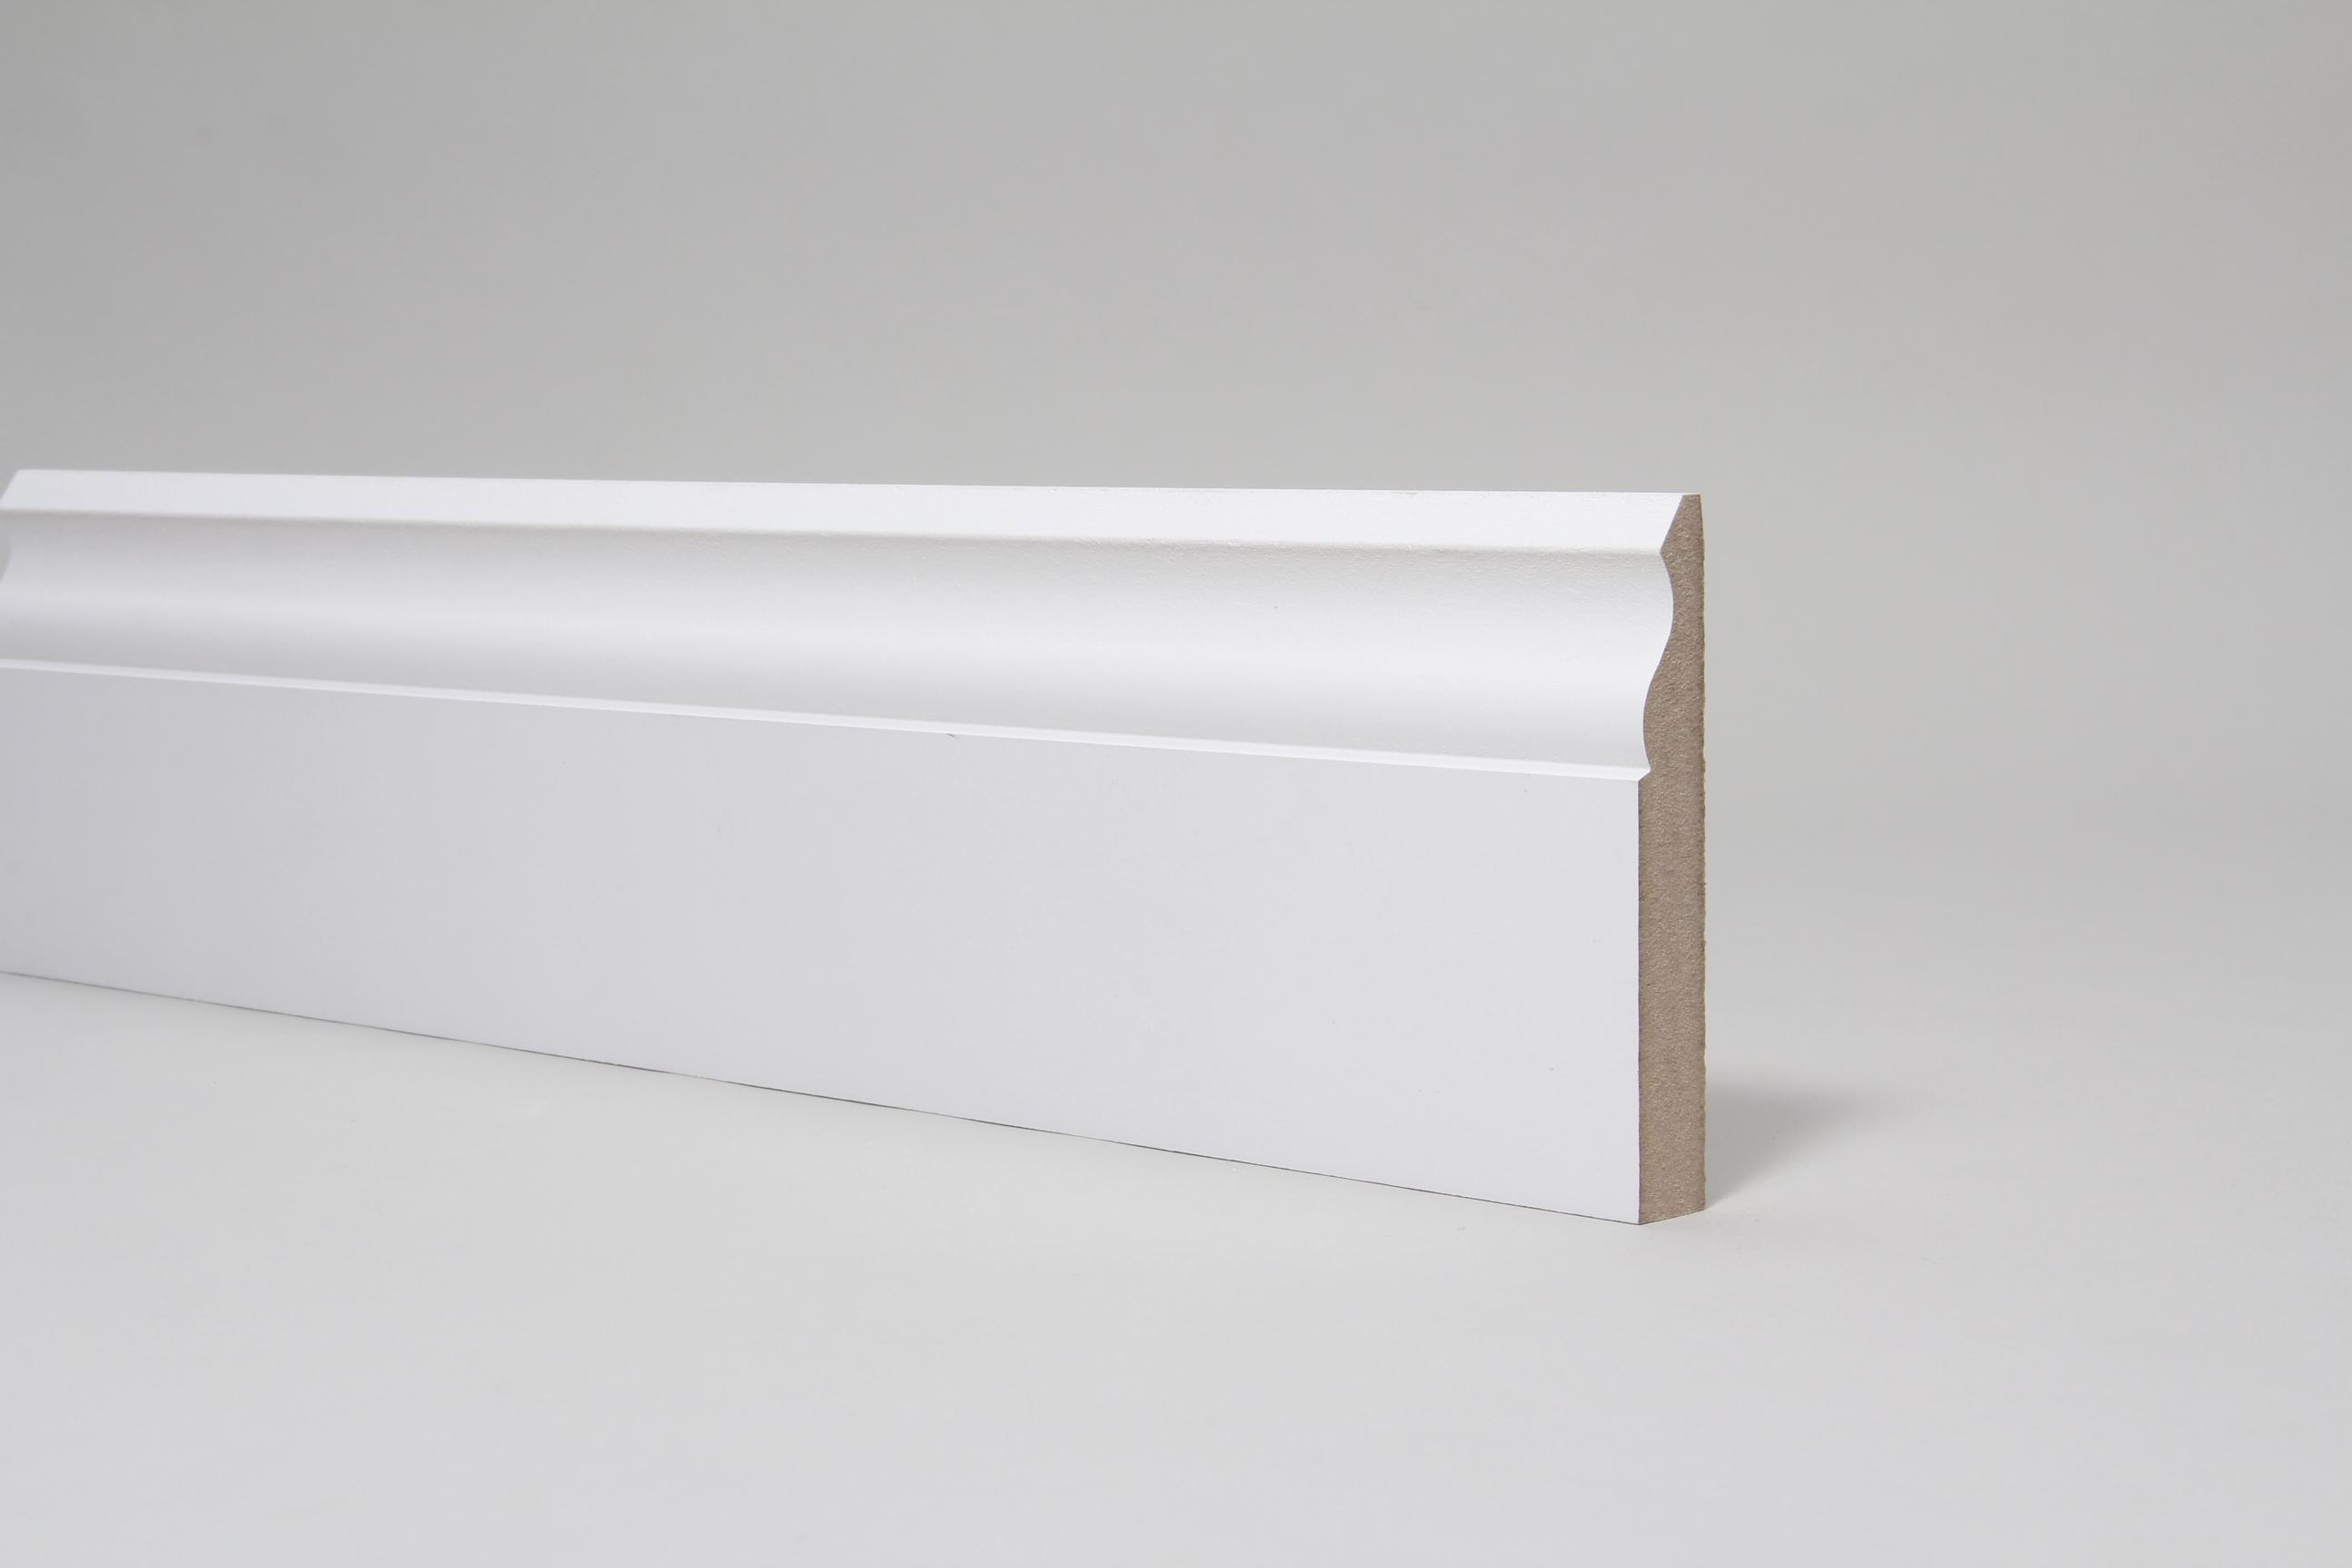 Ogee 18mm x 119mm x 4.4 Mtr Primed